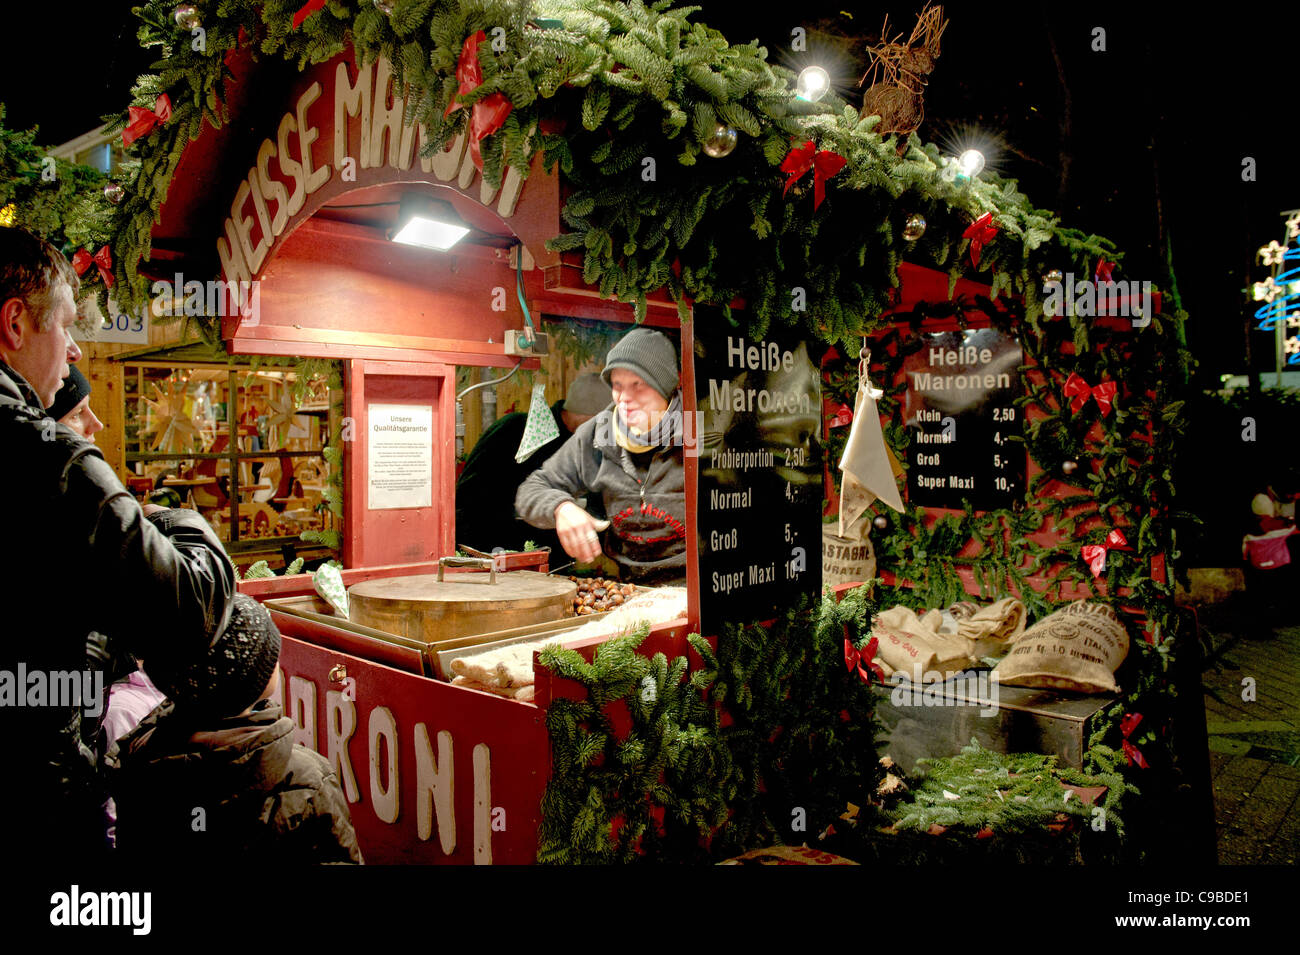 weihnachtsmarkt in deutschland christmas market in germany stock photo royalty free image. Black Bedroom Furniture Sets. Home Design Ideas